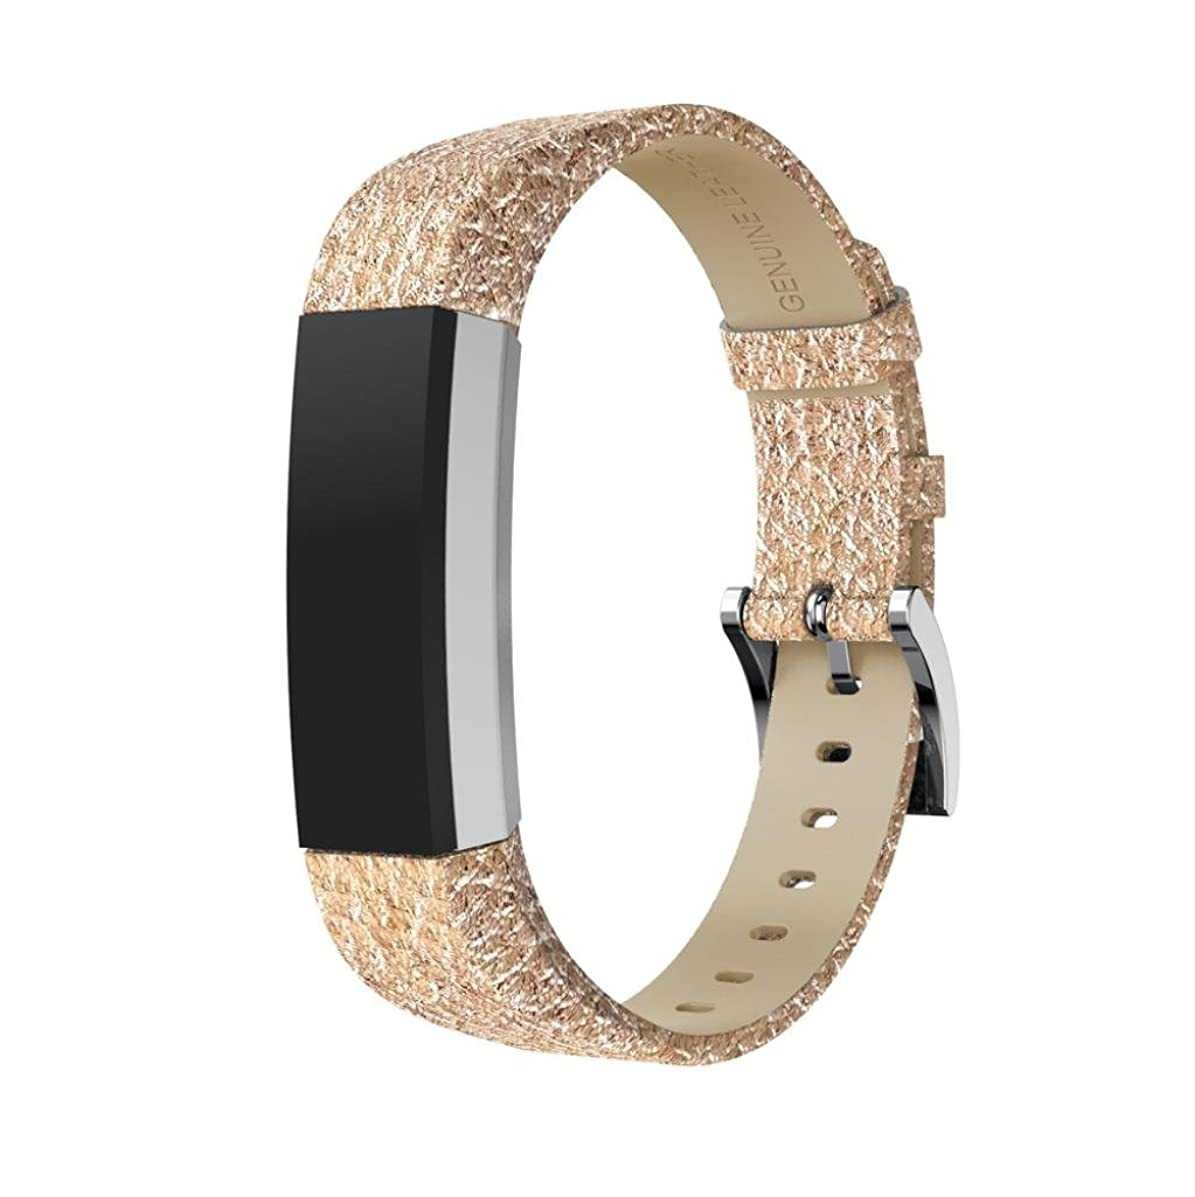 For Fitbit Alta HR Bands and Fitbit Alta Band, Gotd Luxury Leather Strap Sport Replacement Watch Band Accessories Wristband With Metal Connectors, Large Small for Women Men, 5.5